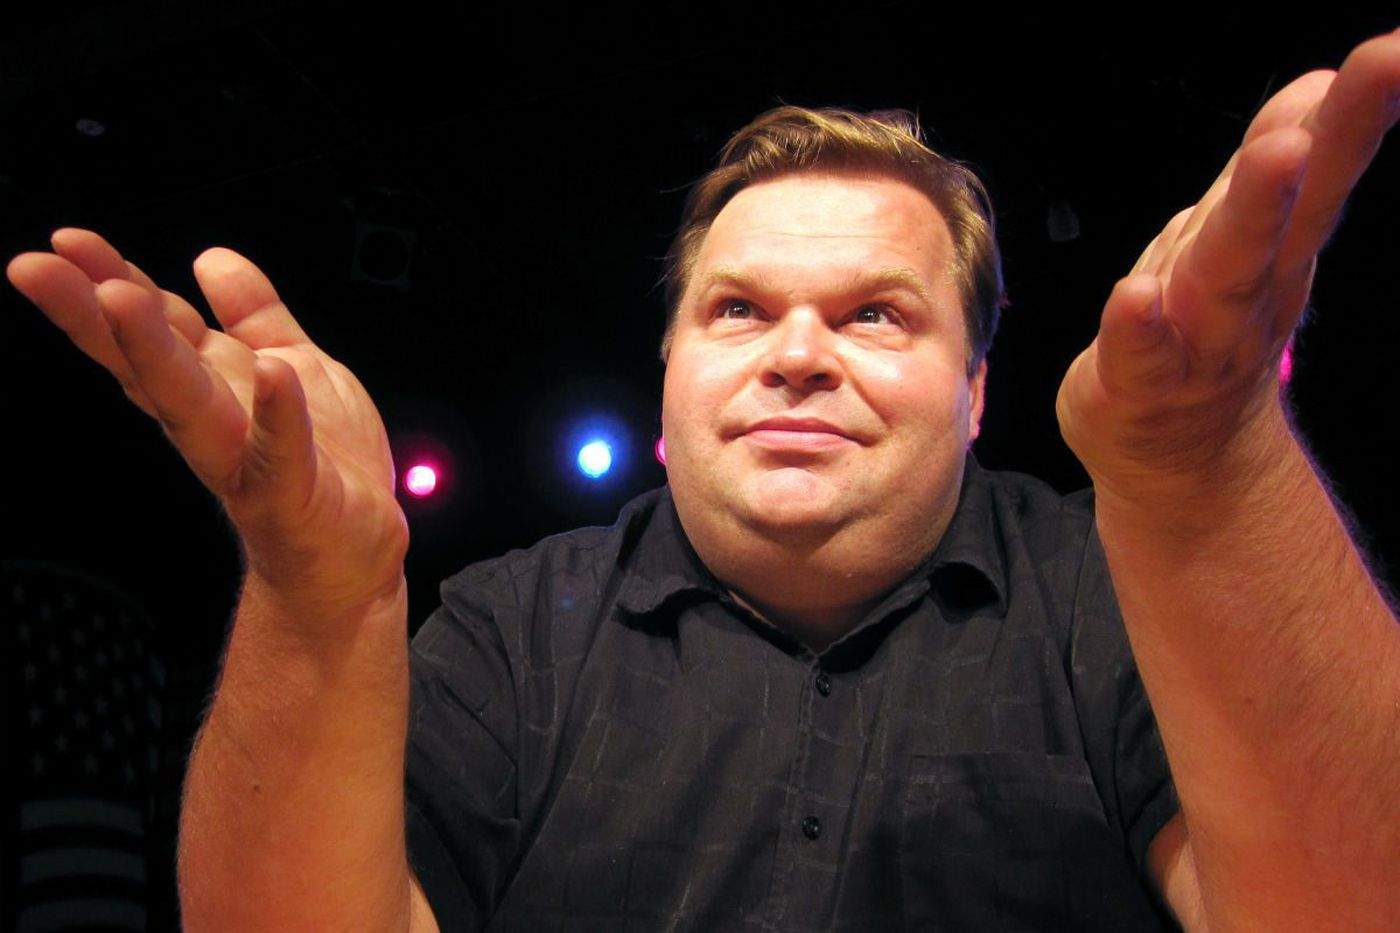 Mike Daisey at Philadelphia Theatre Company: Trump, Nazis, and … journalism, R.I.P.